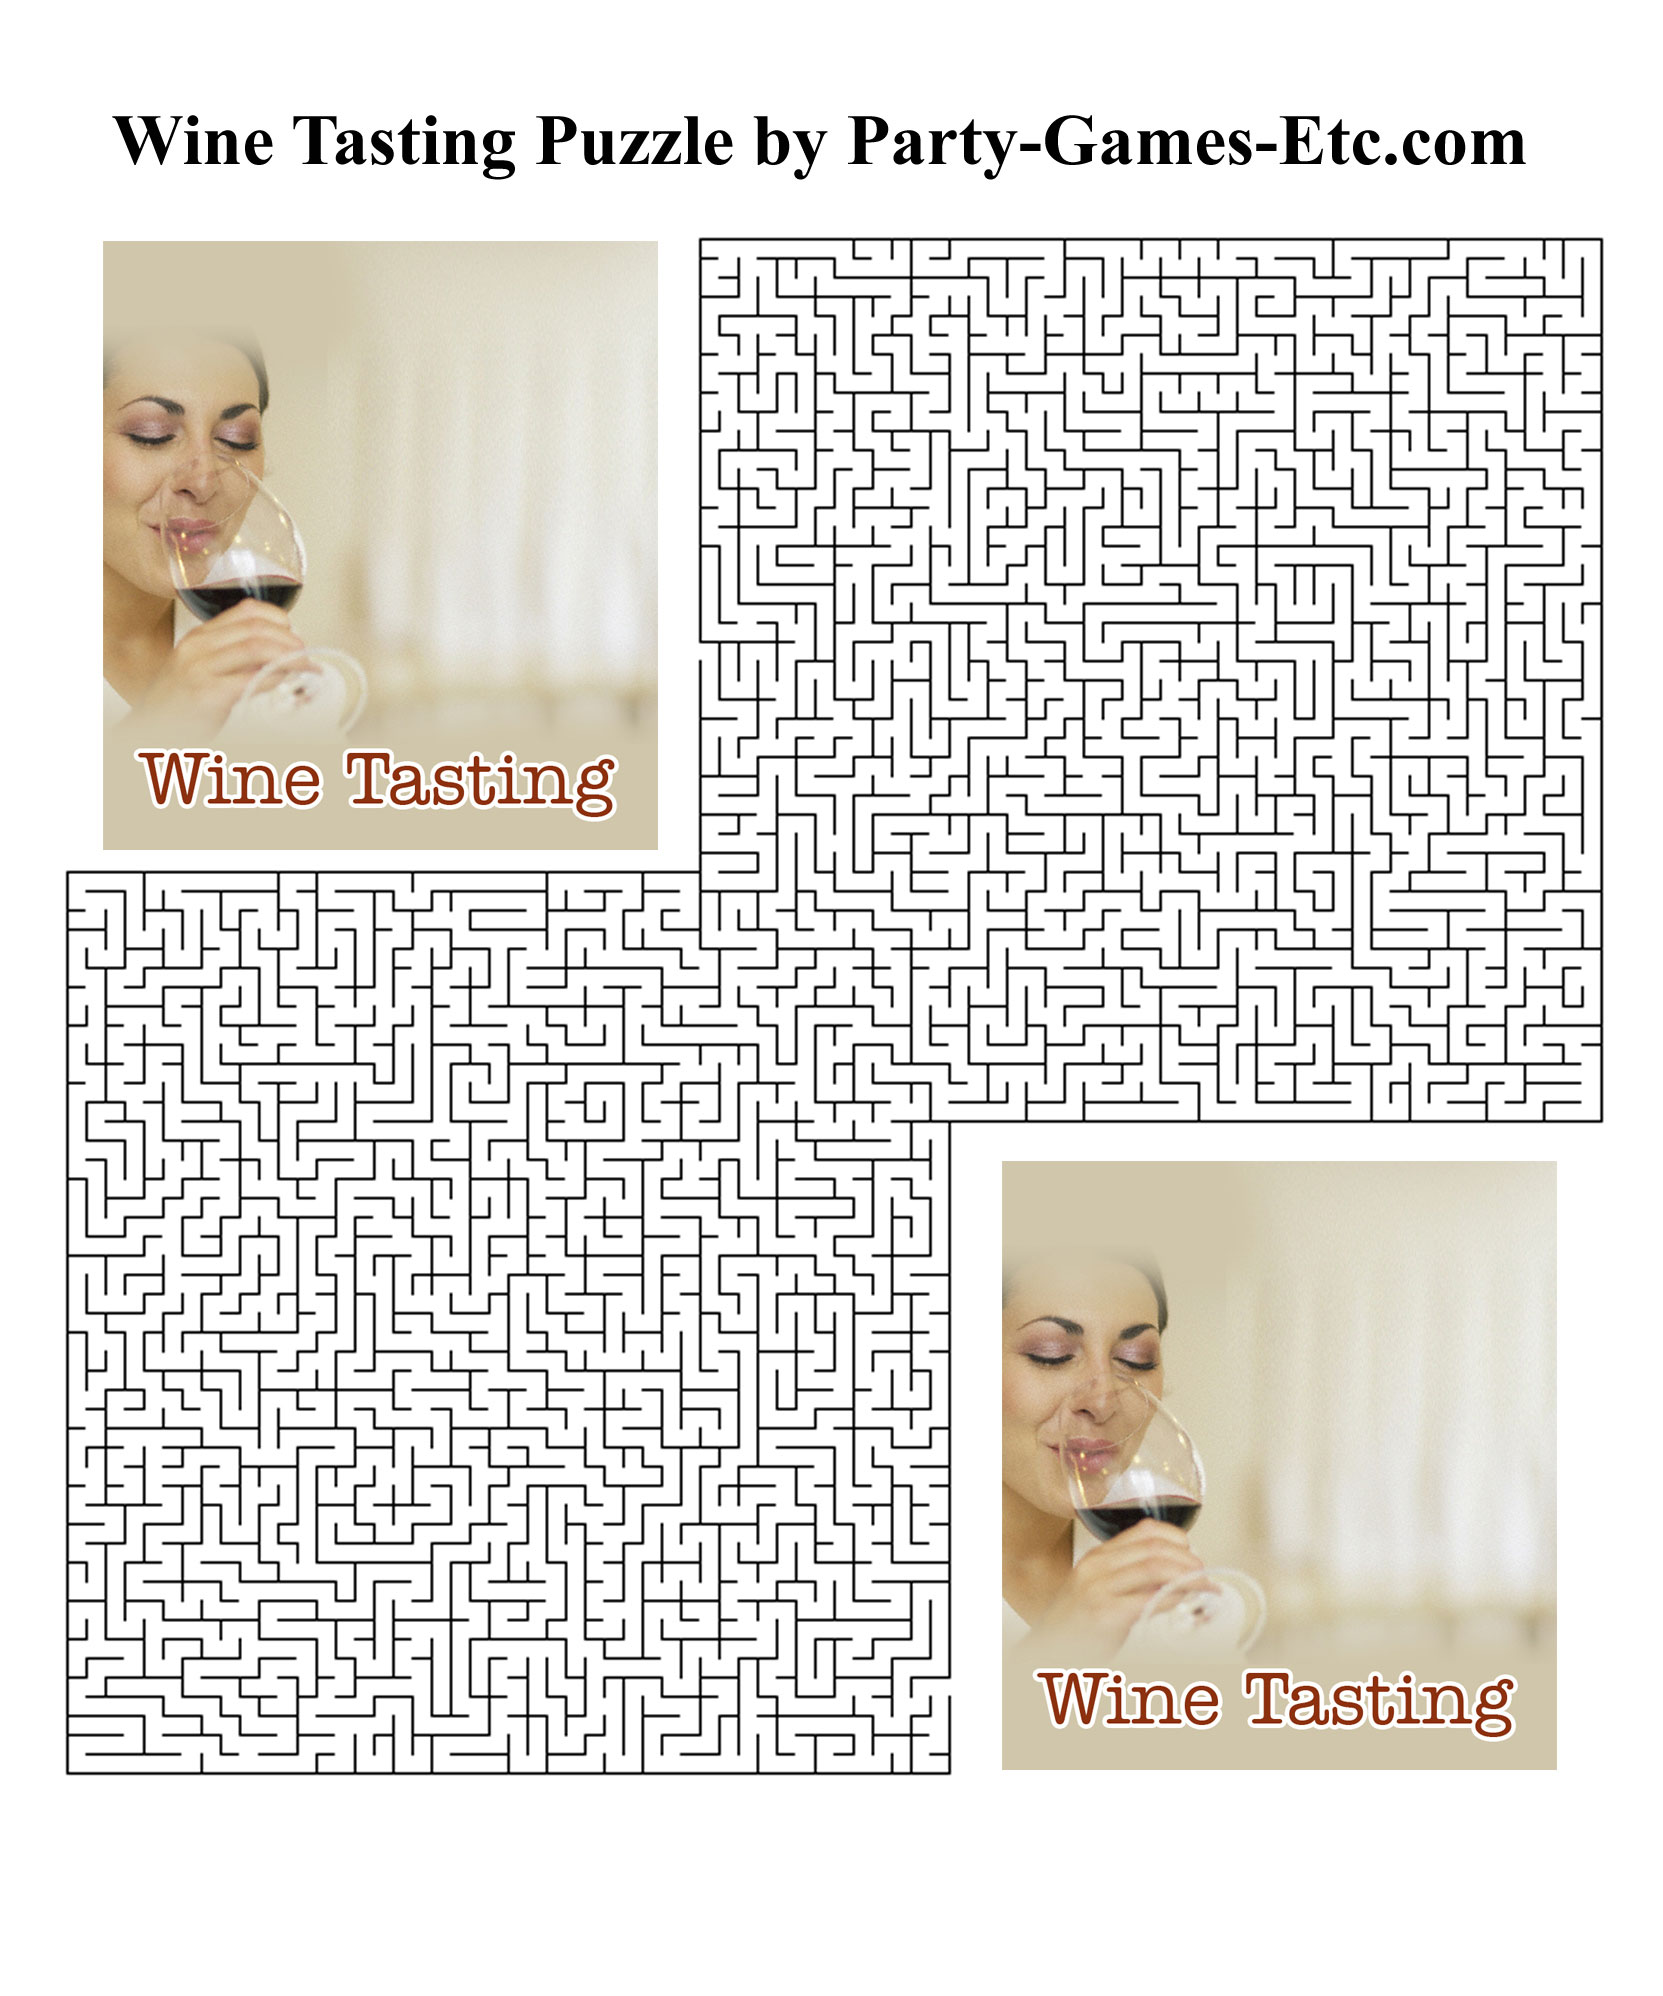 Wine Tasting Party Games Free Printable Games And Activities For A Theme Celebration